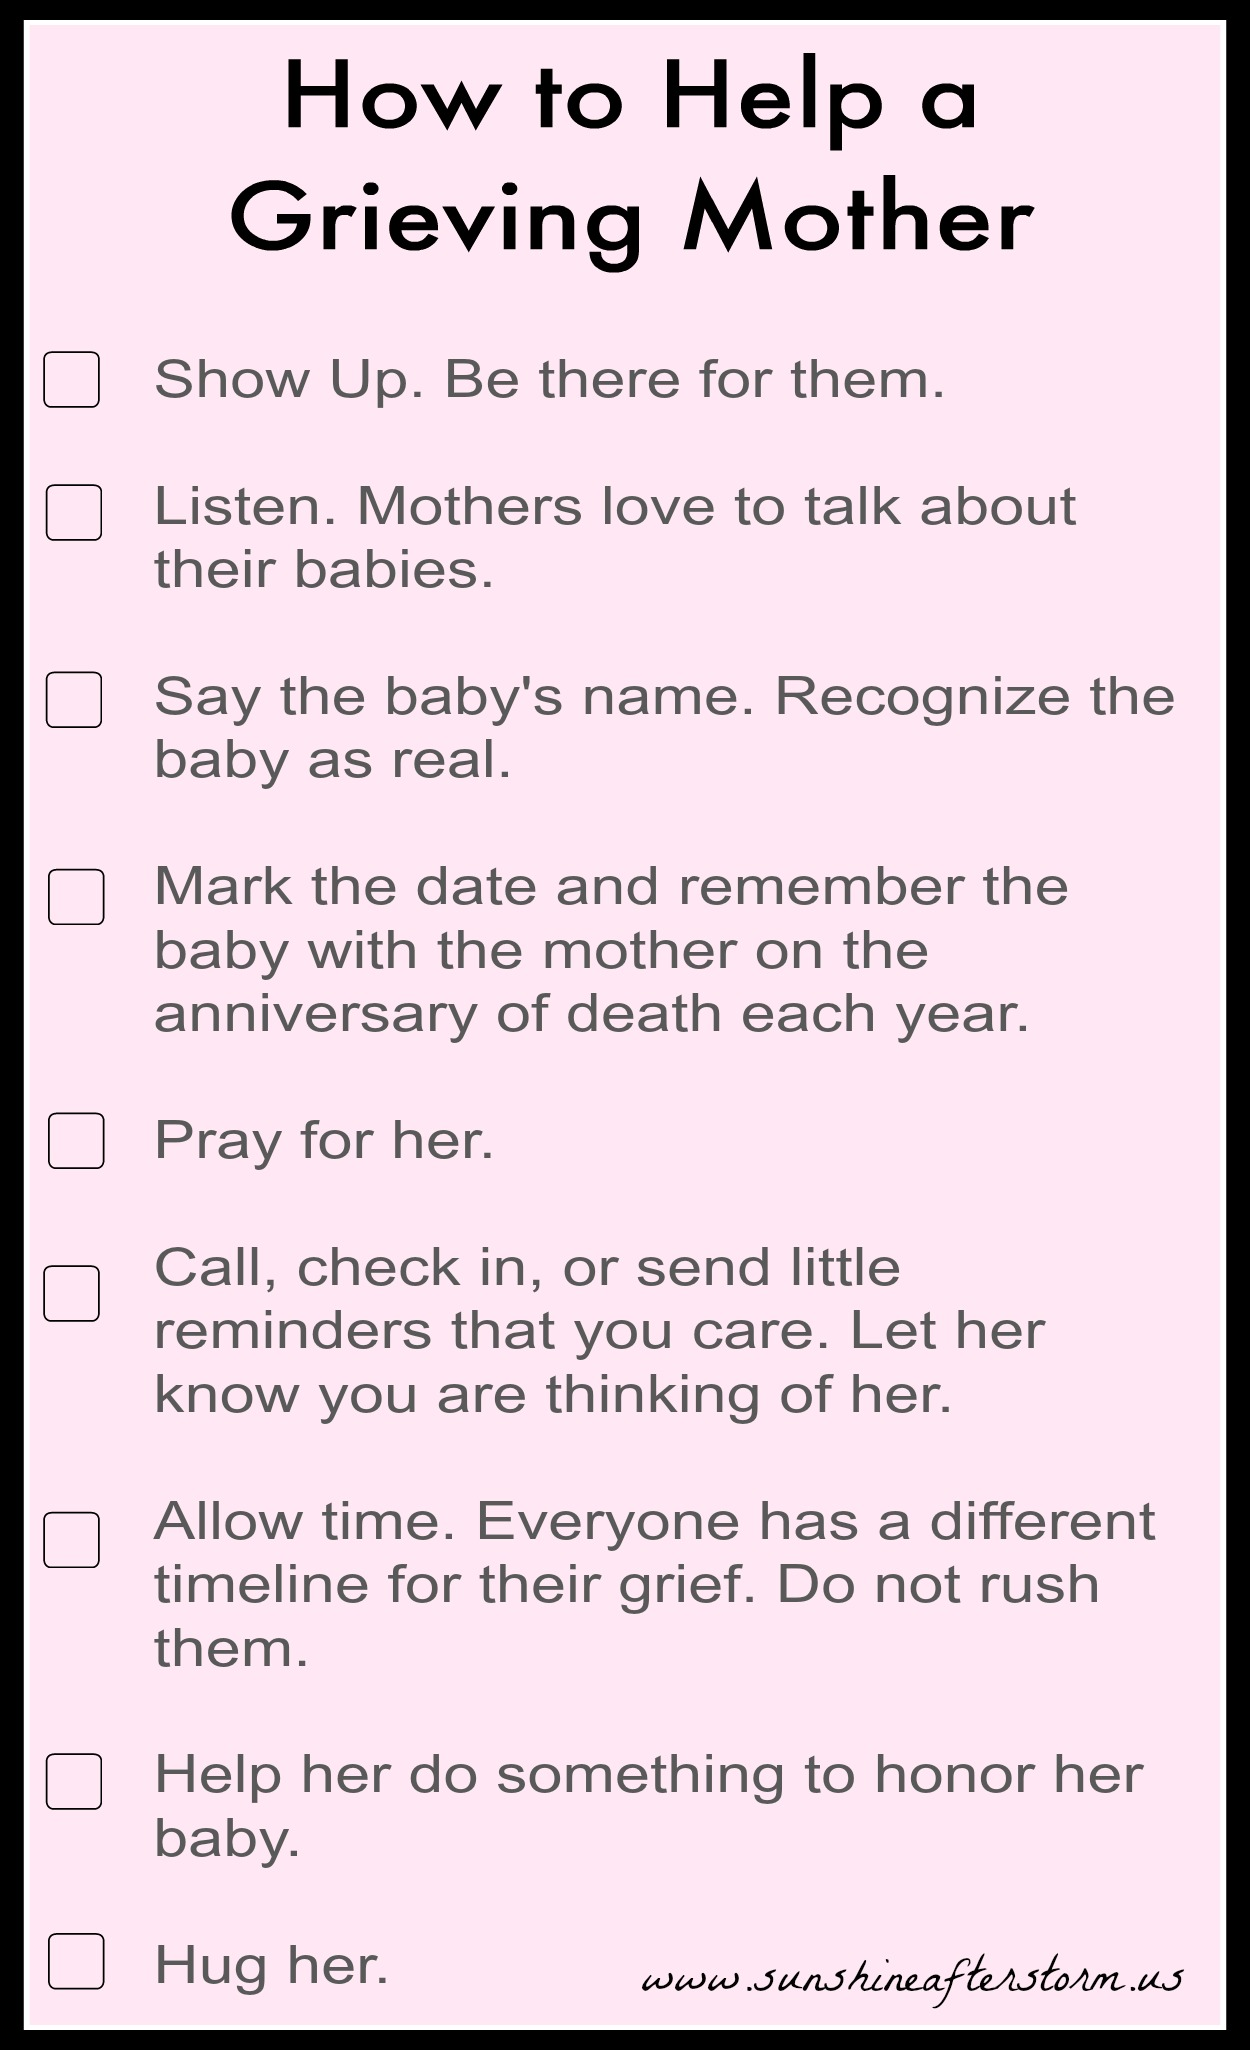 Tips for helping grieving mother